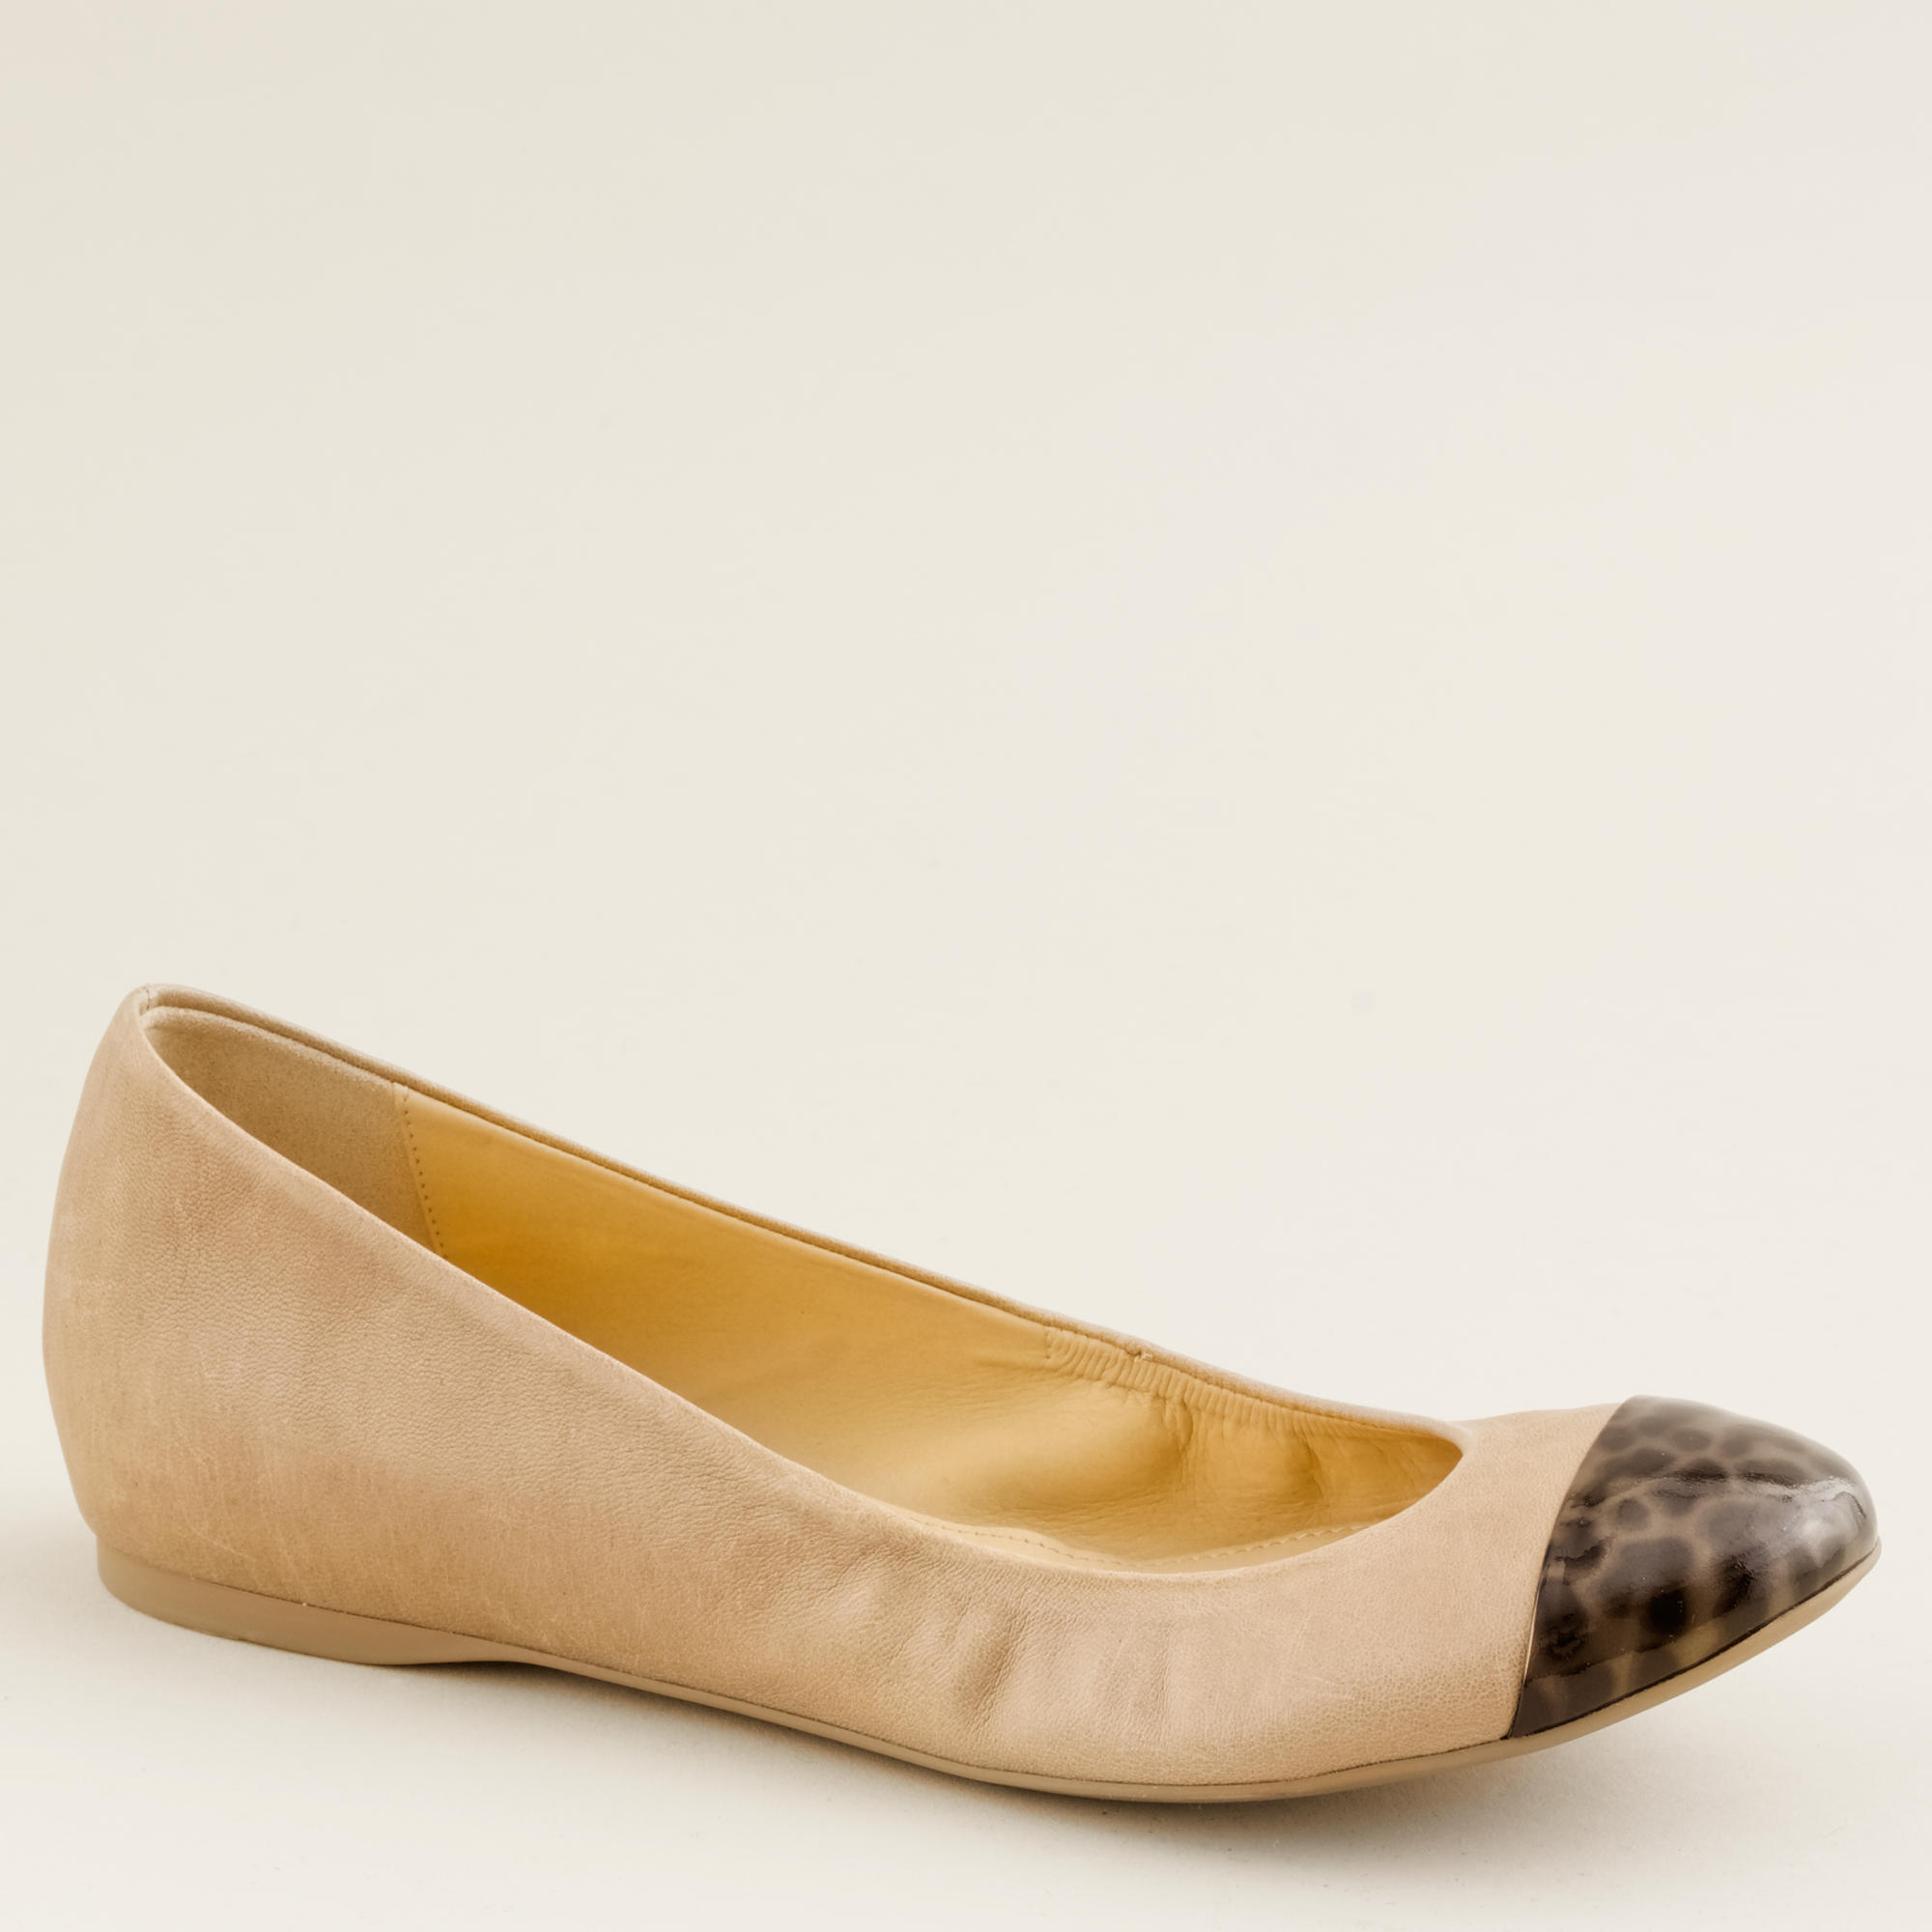 New J Crew leather and tortoise ballet flats